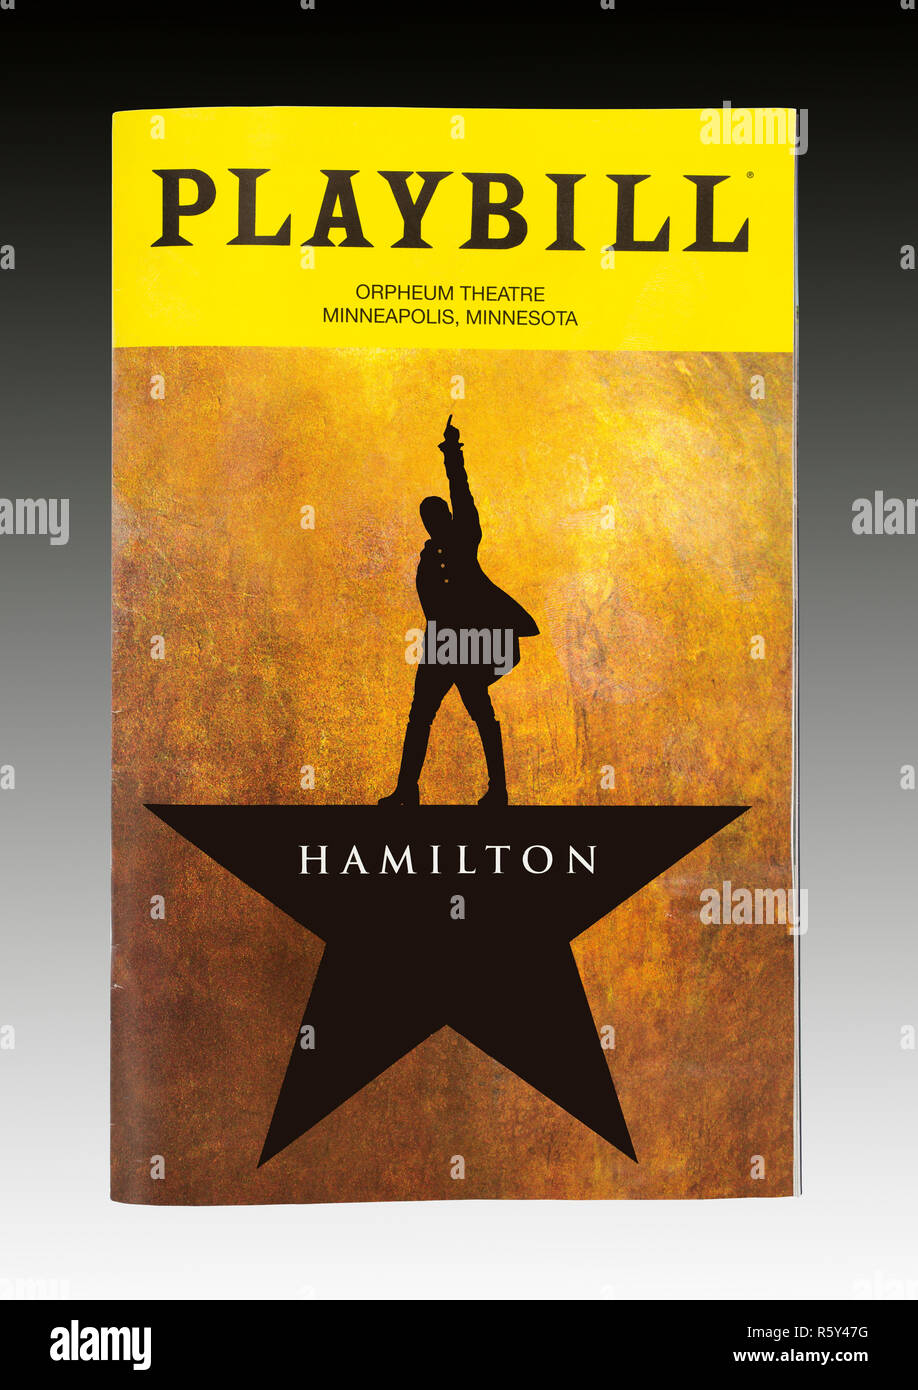 The playbill for the musical Hamilton at the Orpheum Theatre in Minneapolis, Minnesota - Stock Image